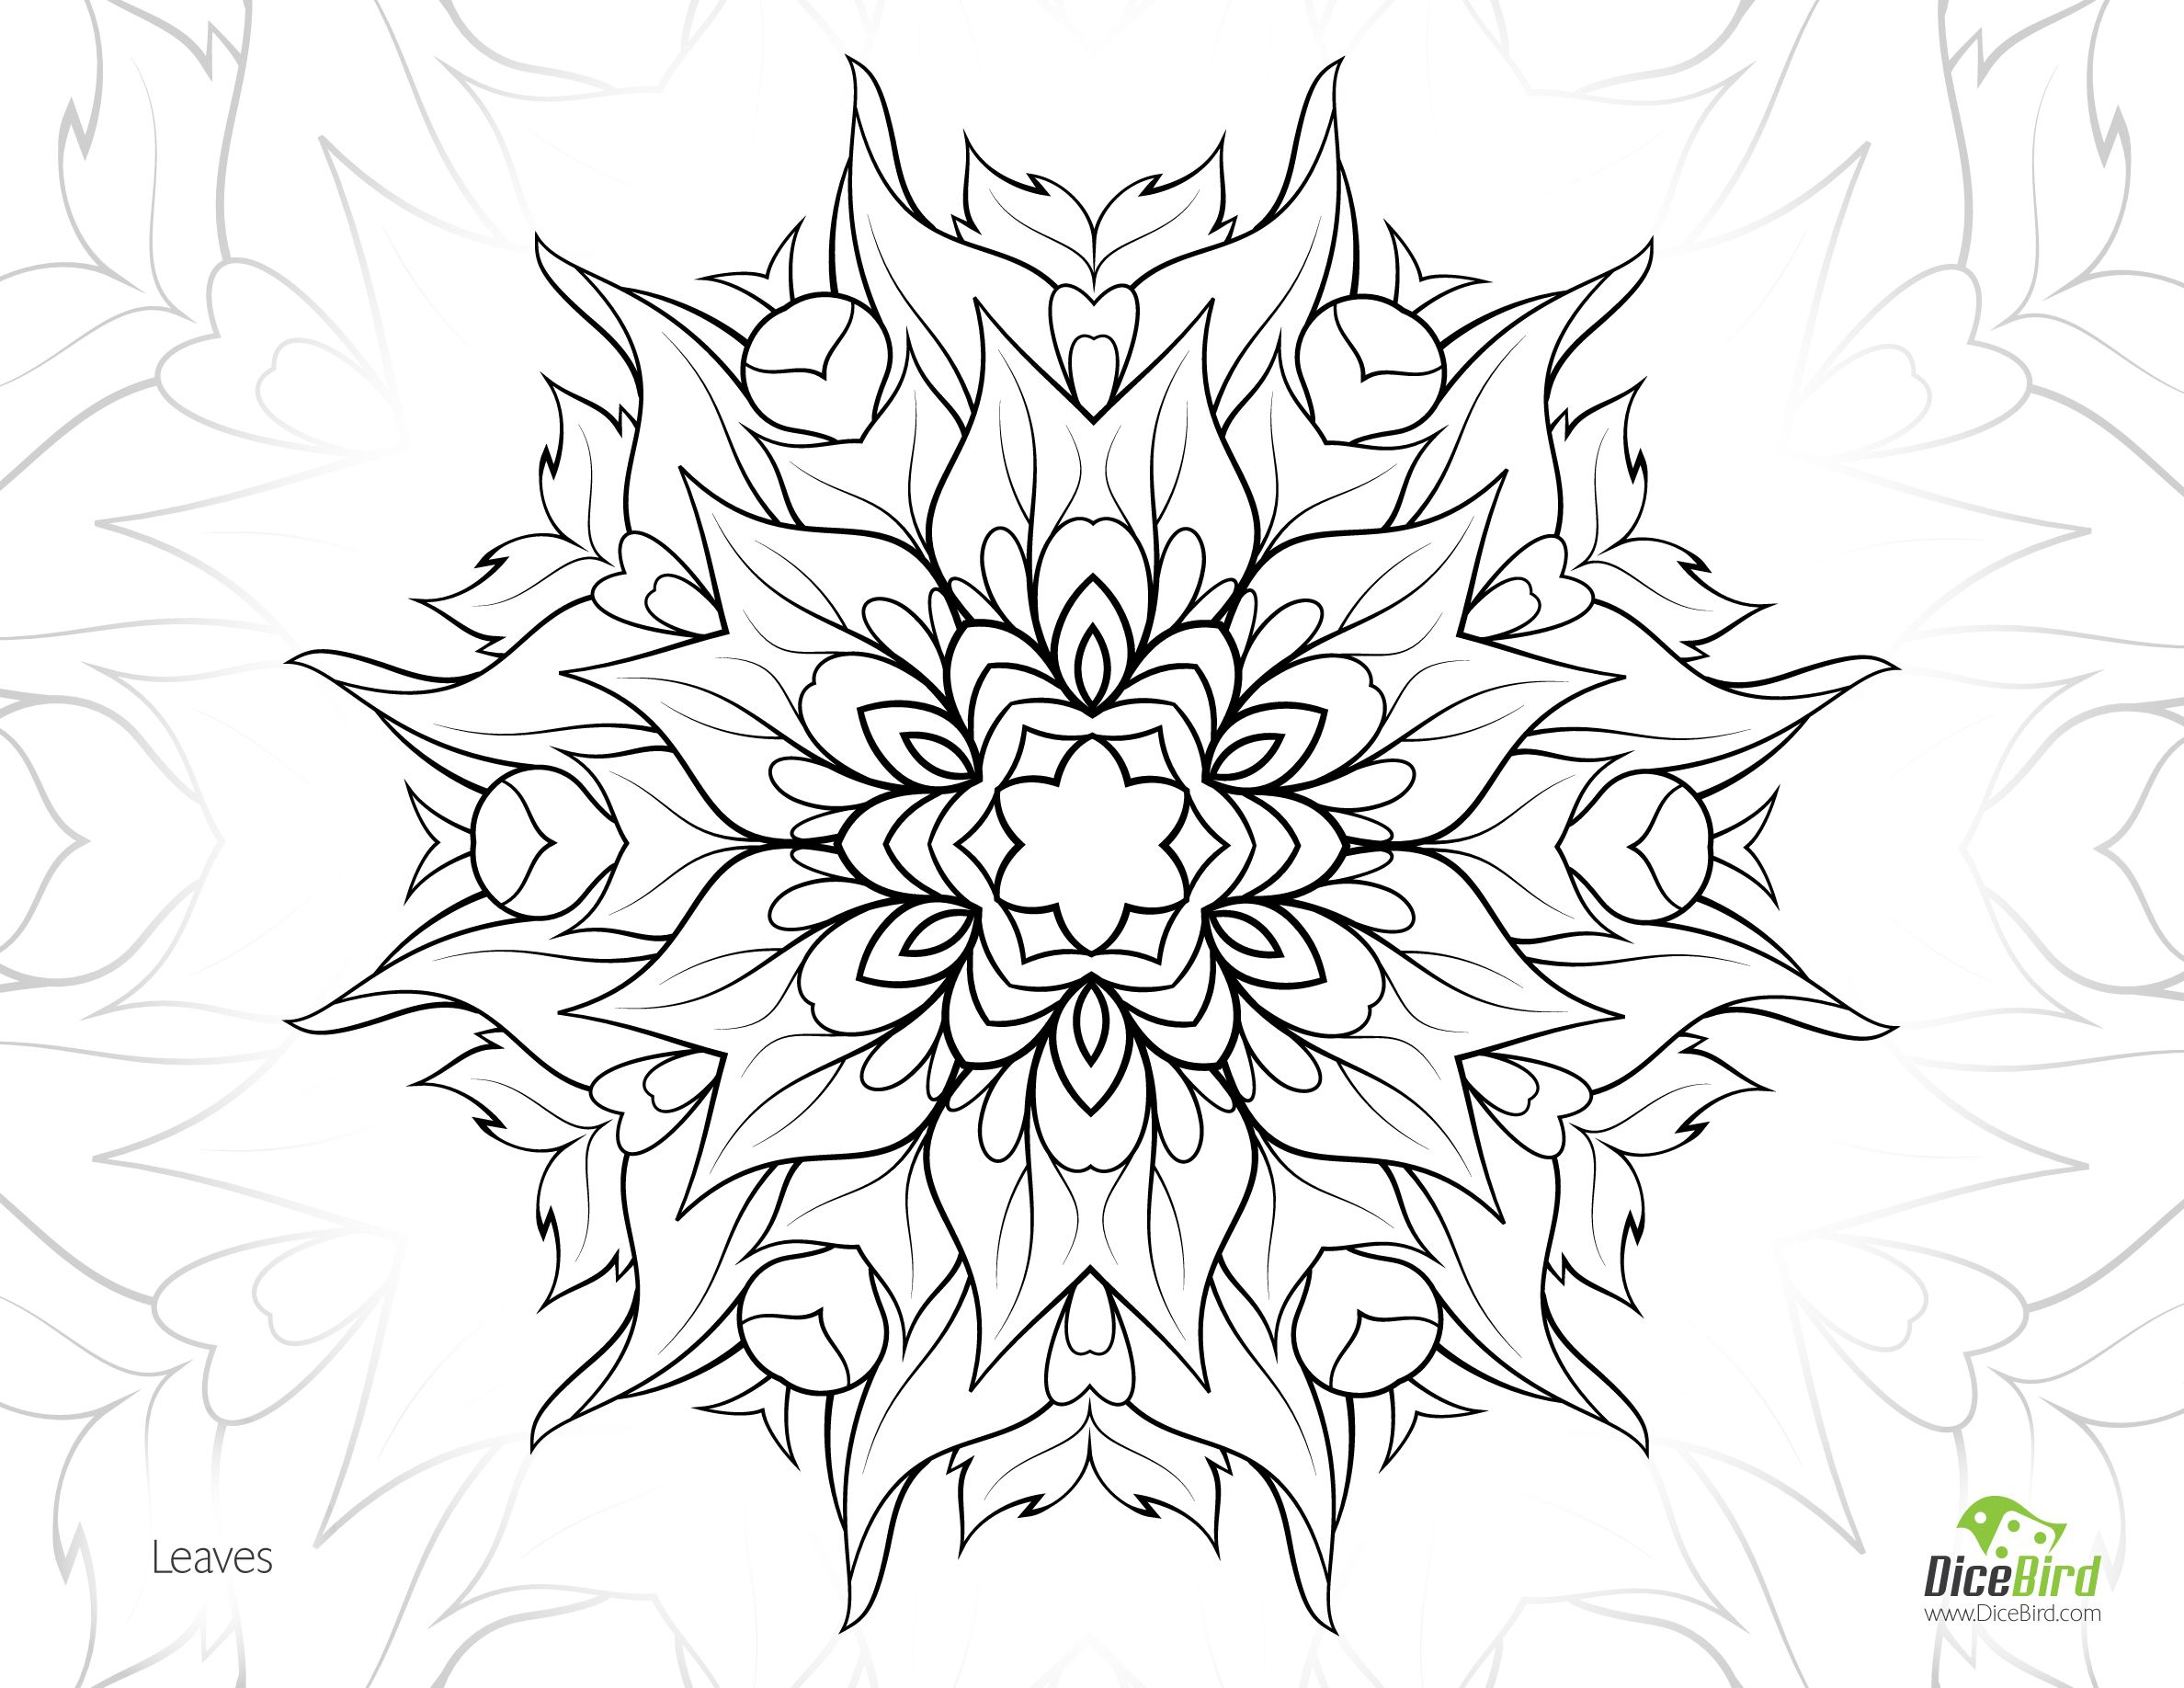 Leaves Flower Free Adult Printable Mandala Colouring Page